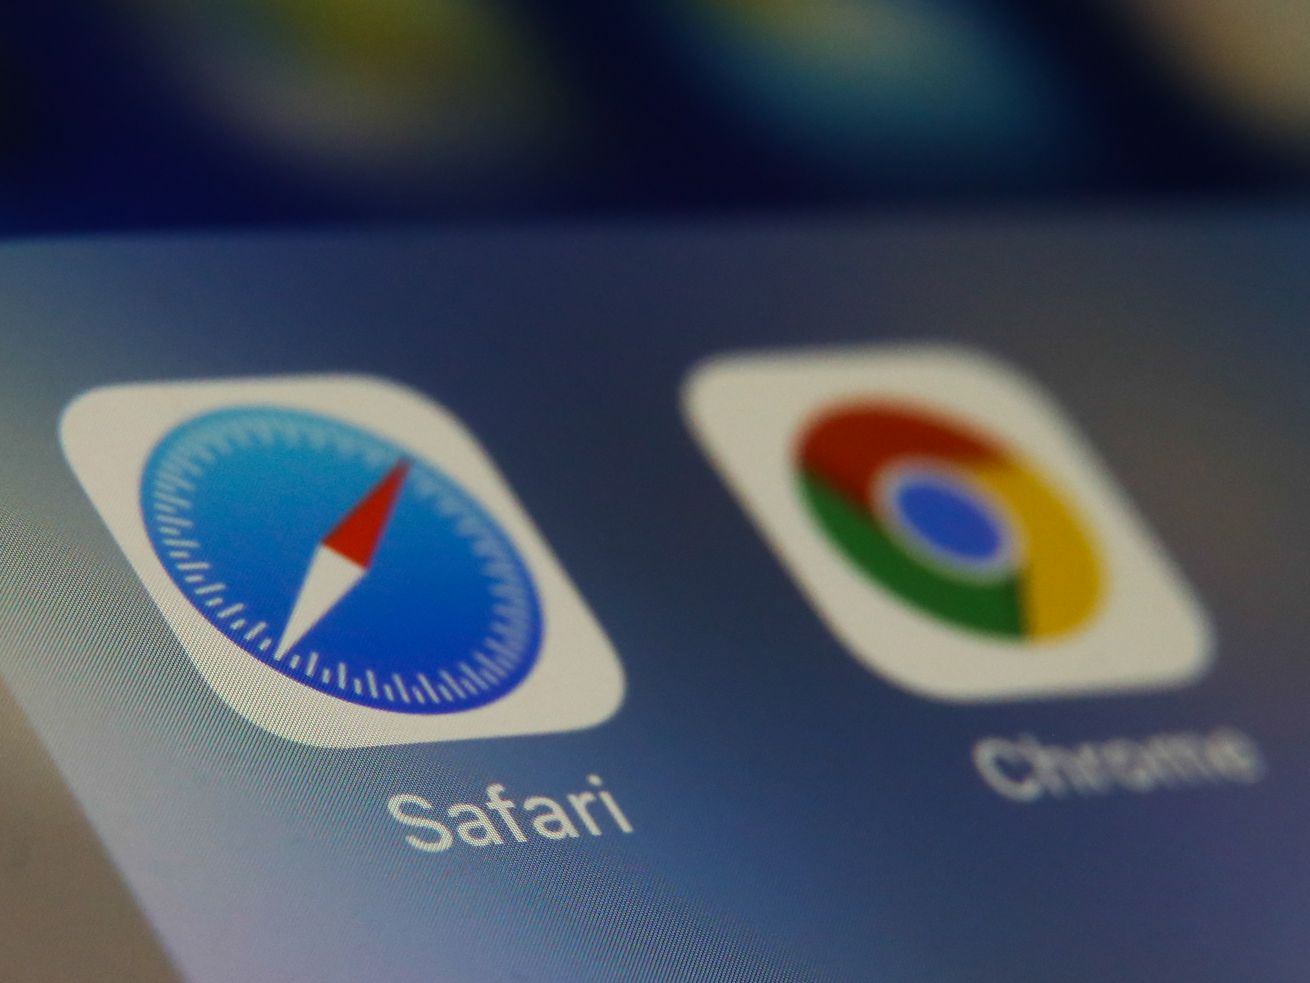 Safari and Chrome browser icons on a phone screen.